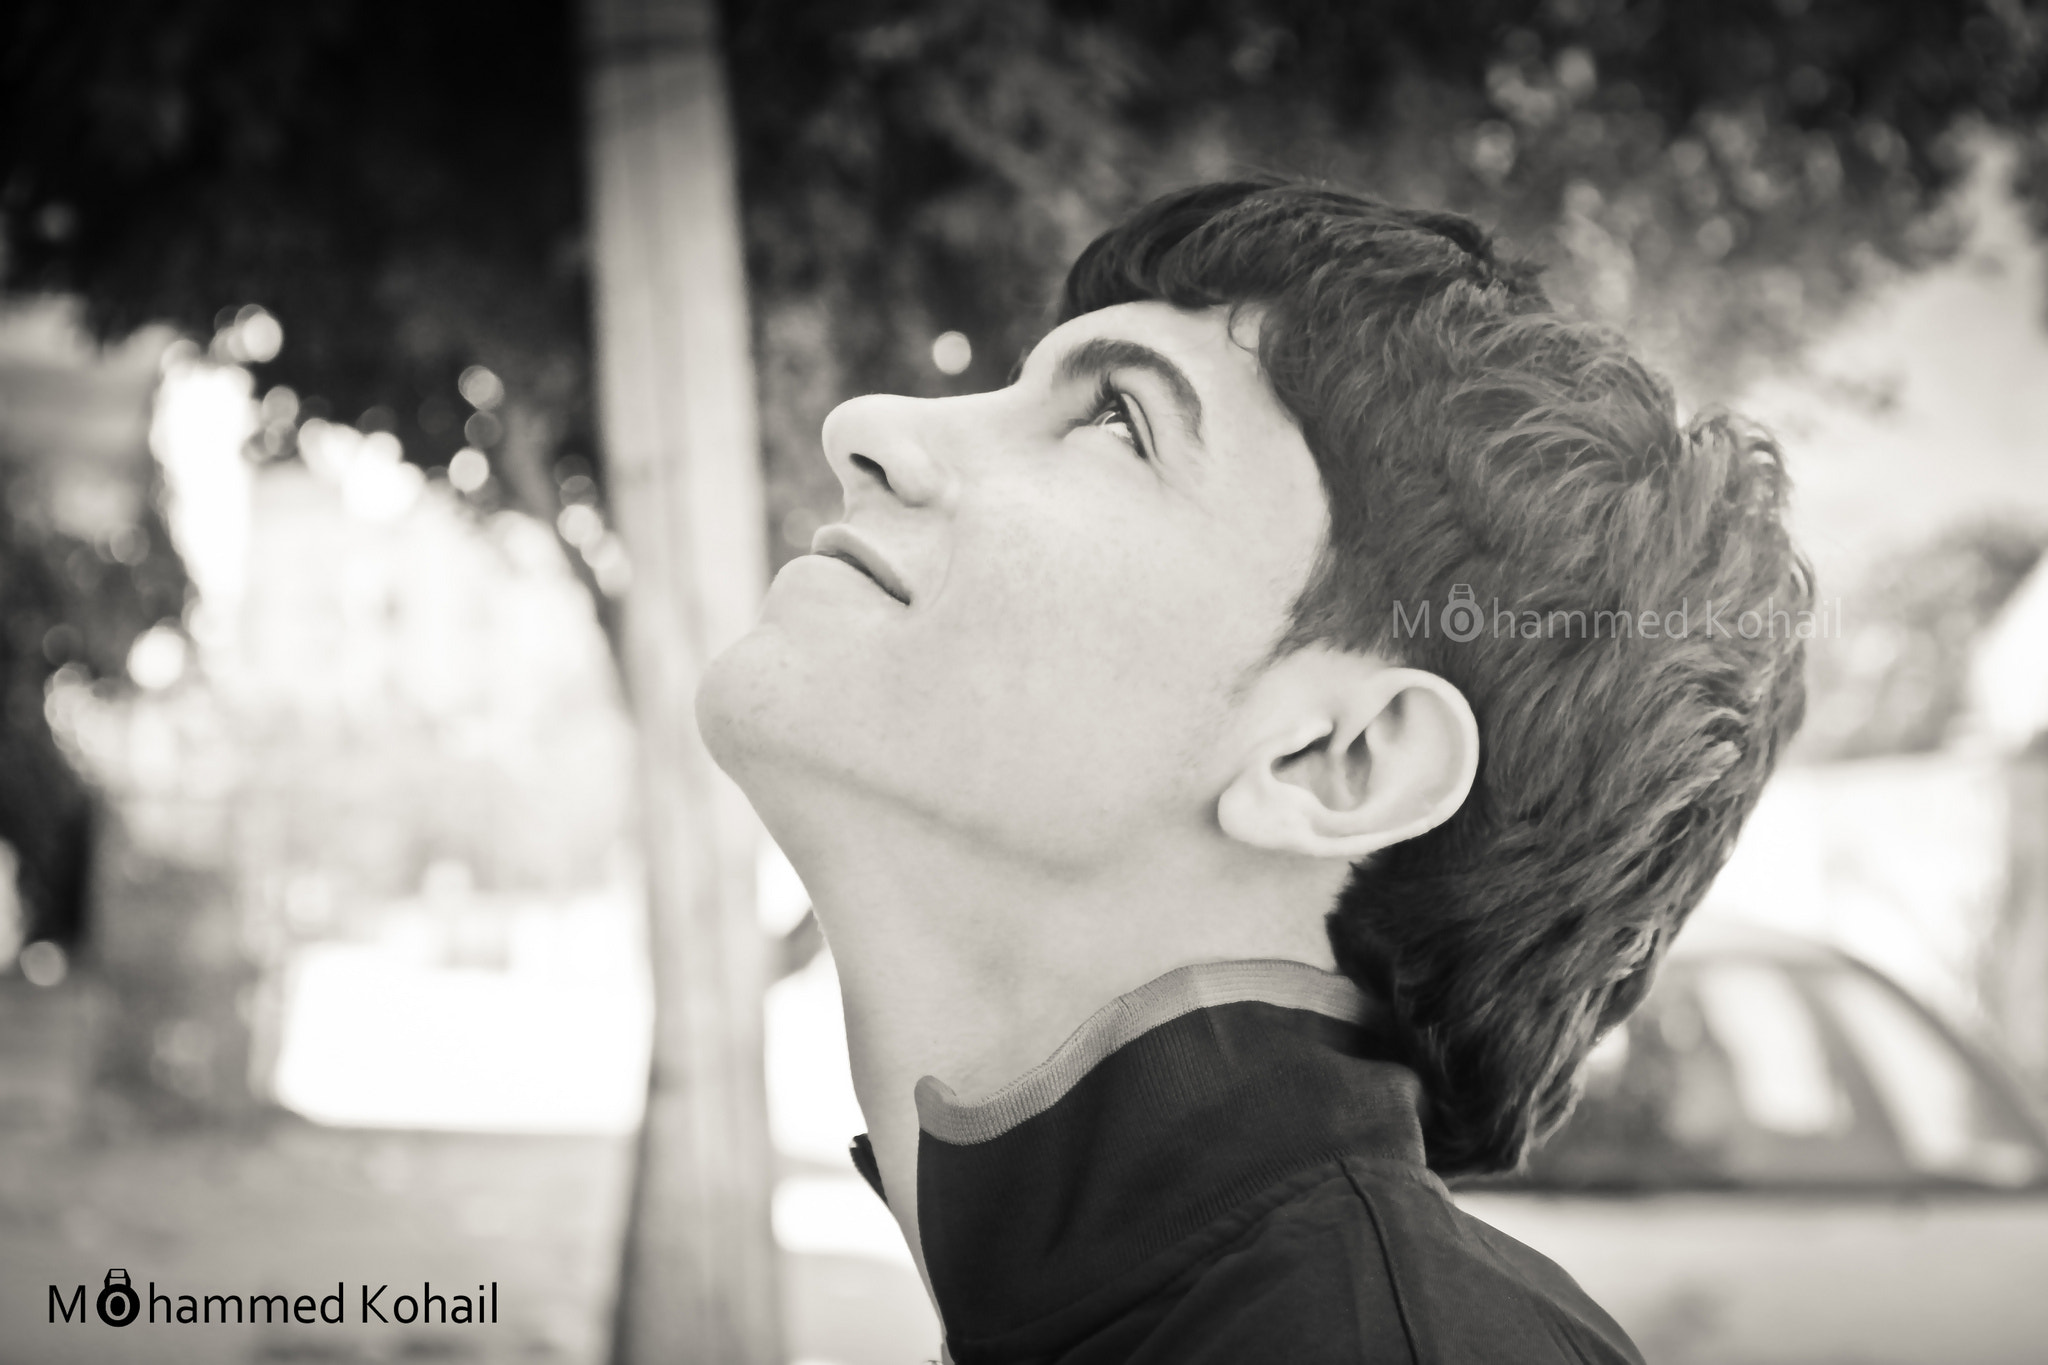 Photograph Mohammed Nassar by Mohammed Kohail on 500px